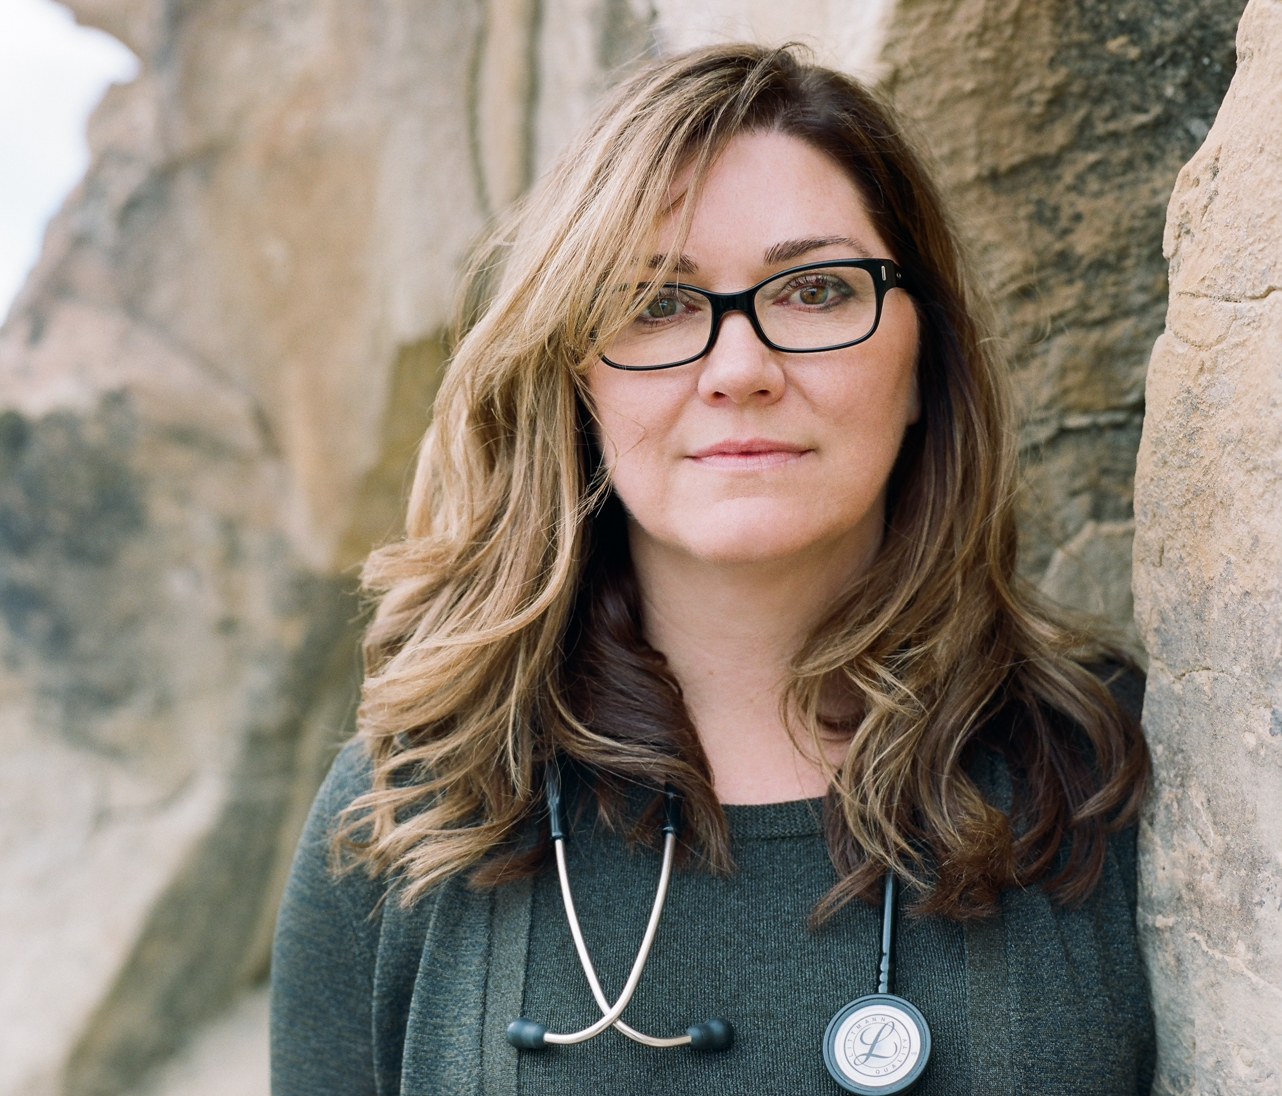 Dr. Diane operated a family medicine clinic in Saratoga and later in Meeteetse, Wyoming; she was the only practicing physician within a 30+ mile radius.